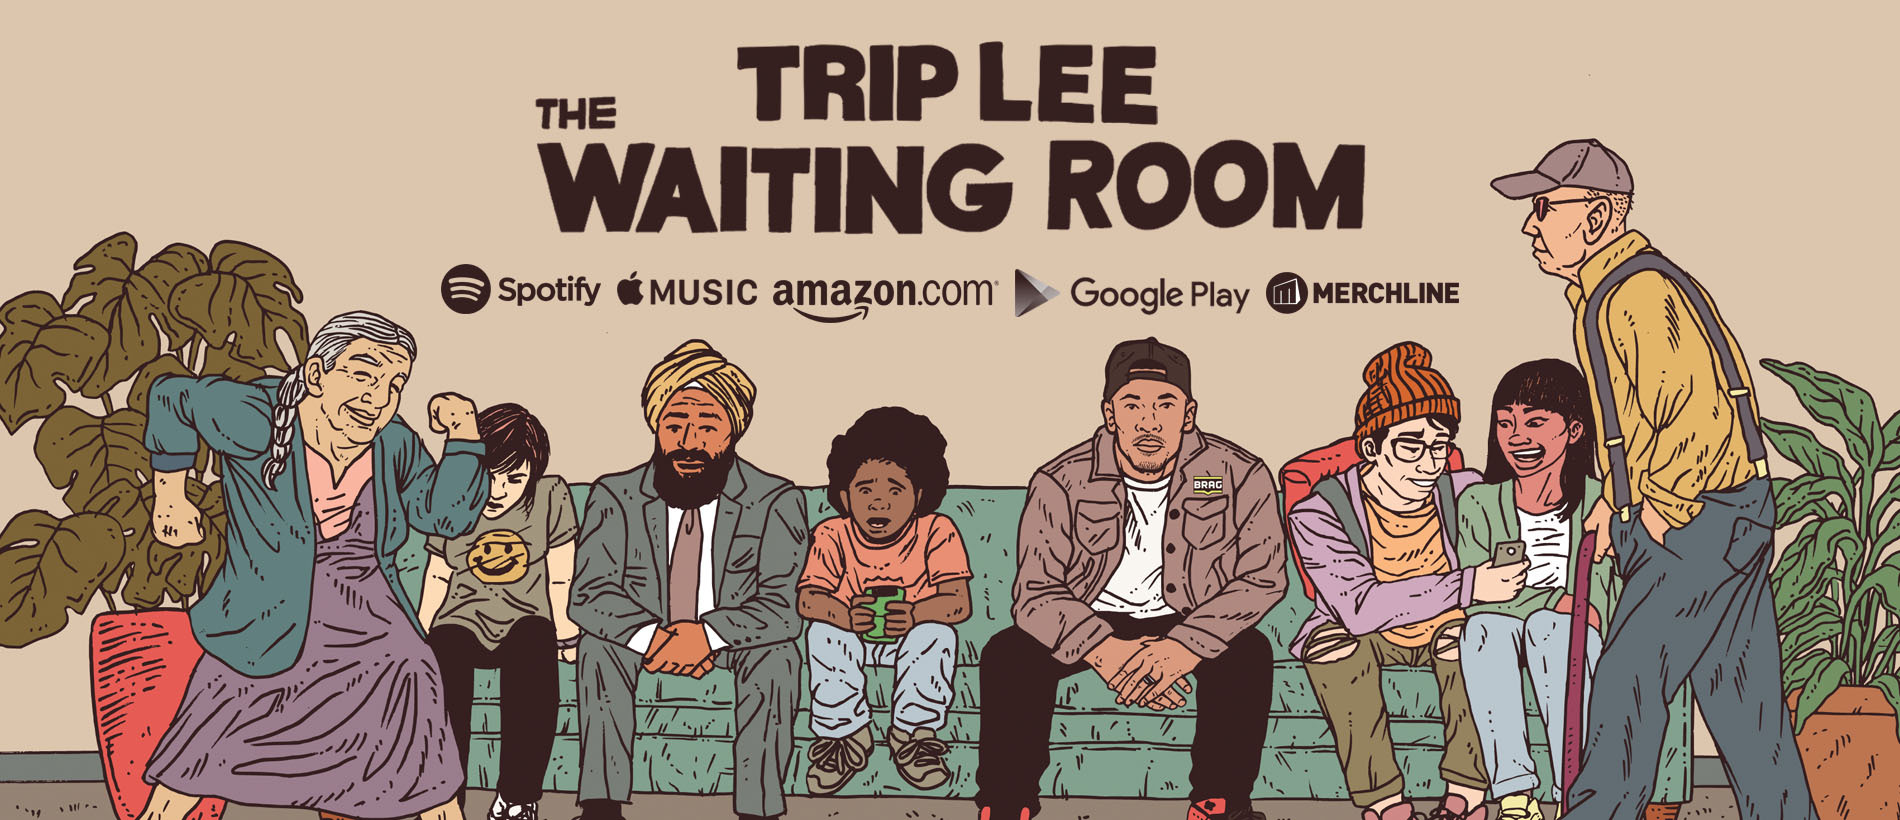 TRIP LEE X THE WAITING ROOM X OUT NOW